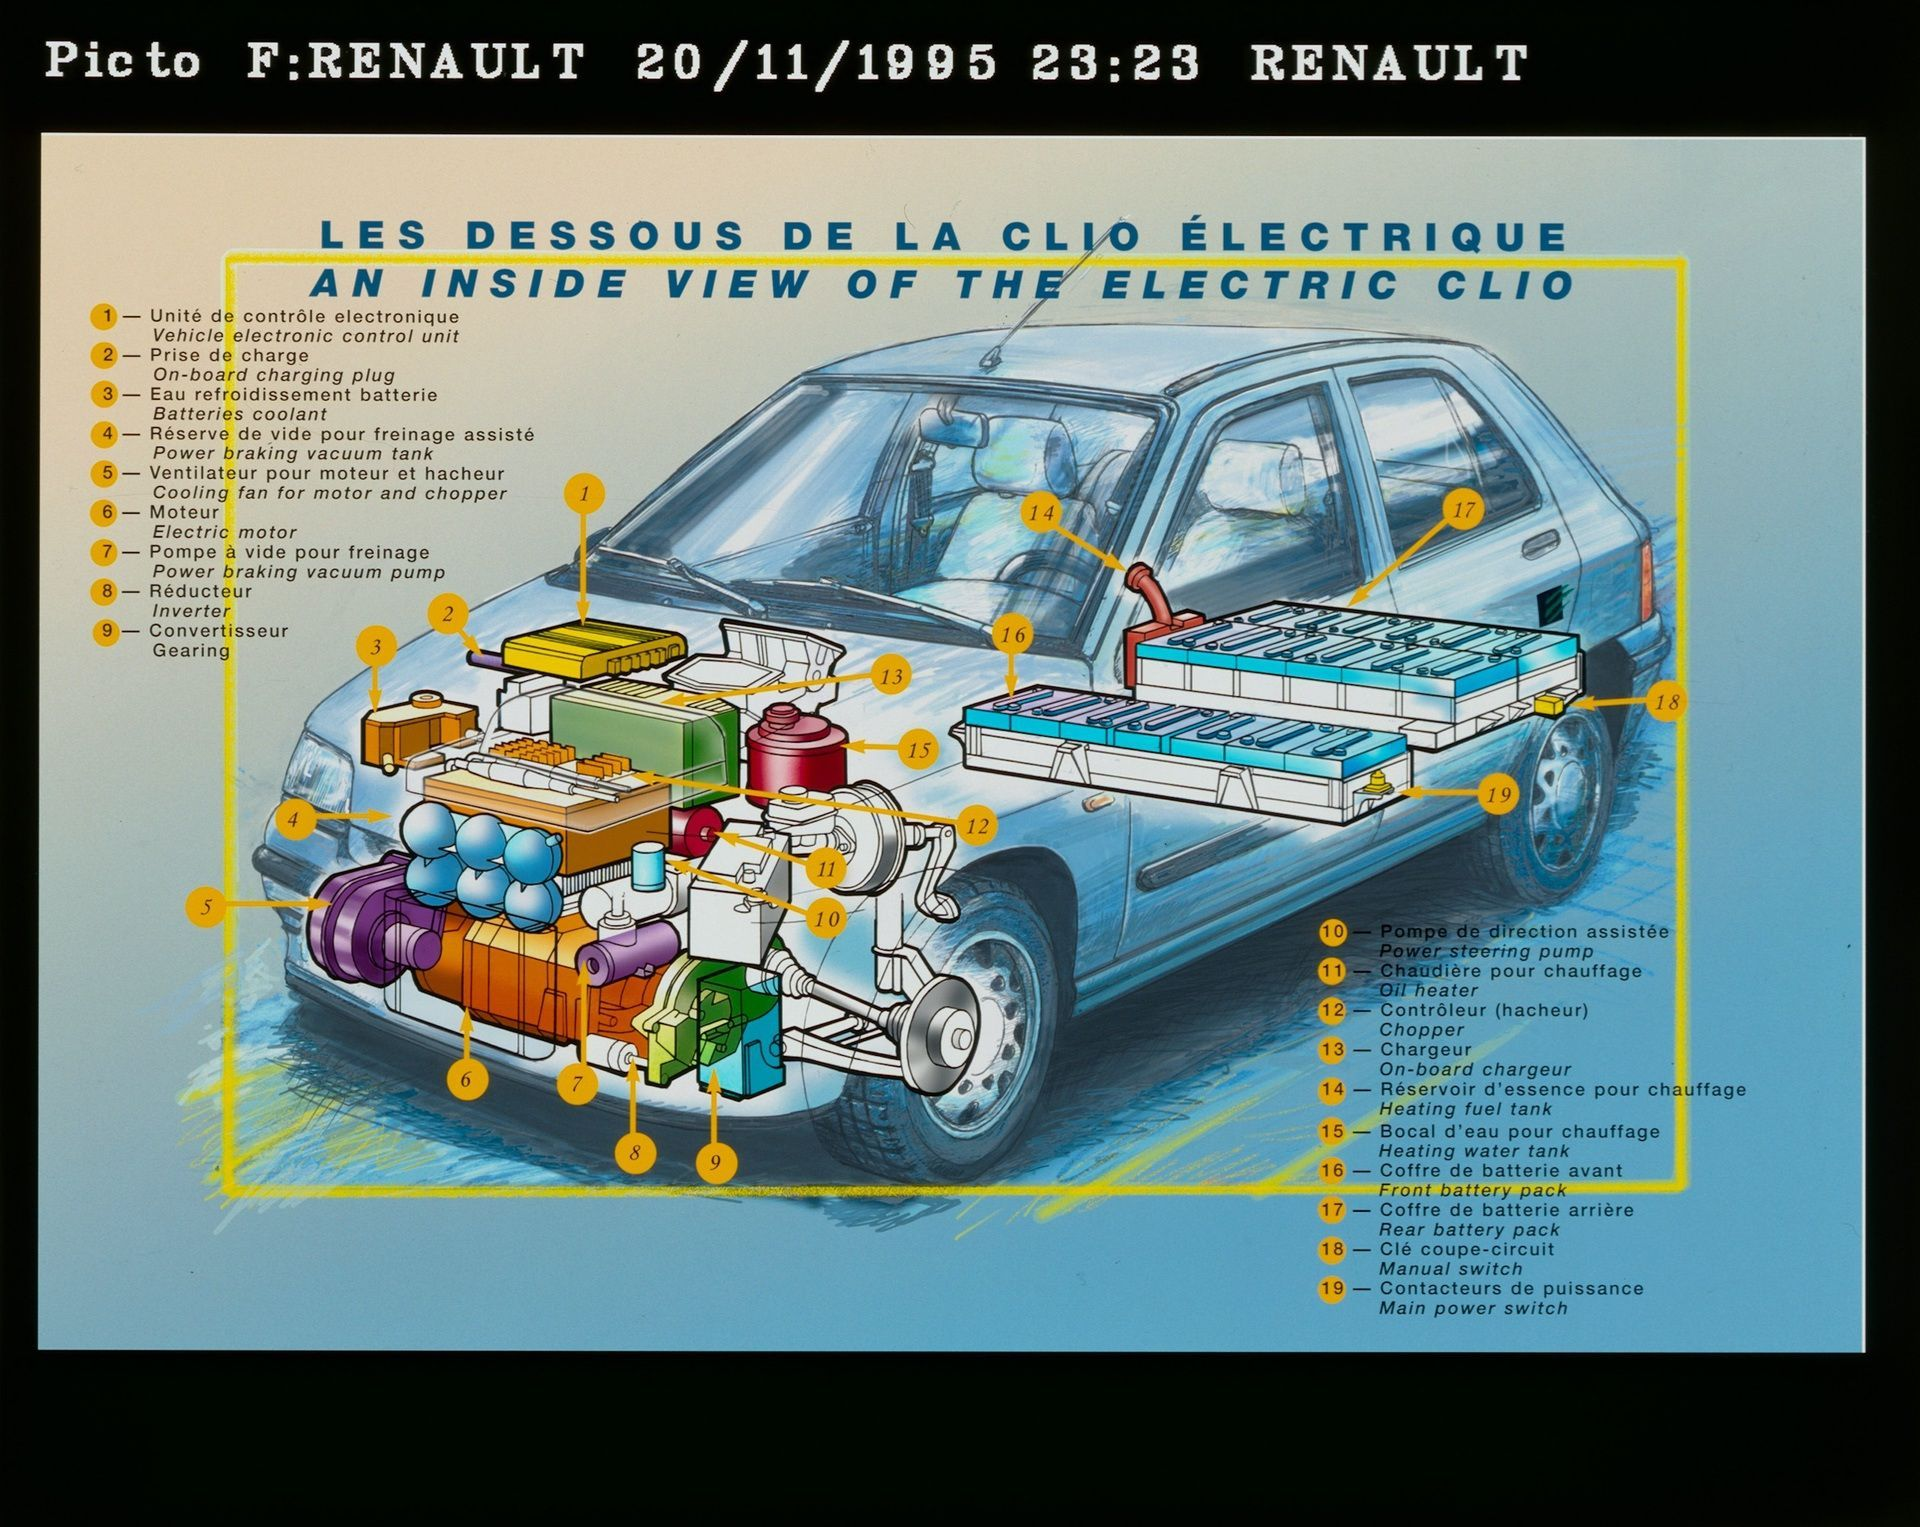 2020-30-years-of-Renault-CLIO-Renault-CLIO-I-1990-1999-23